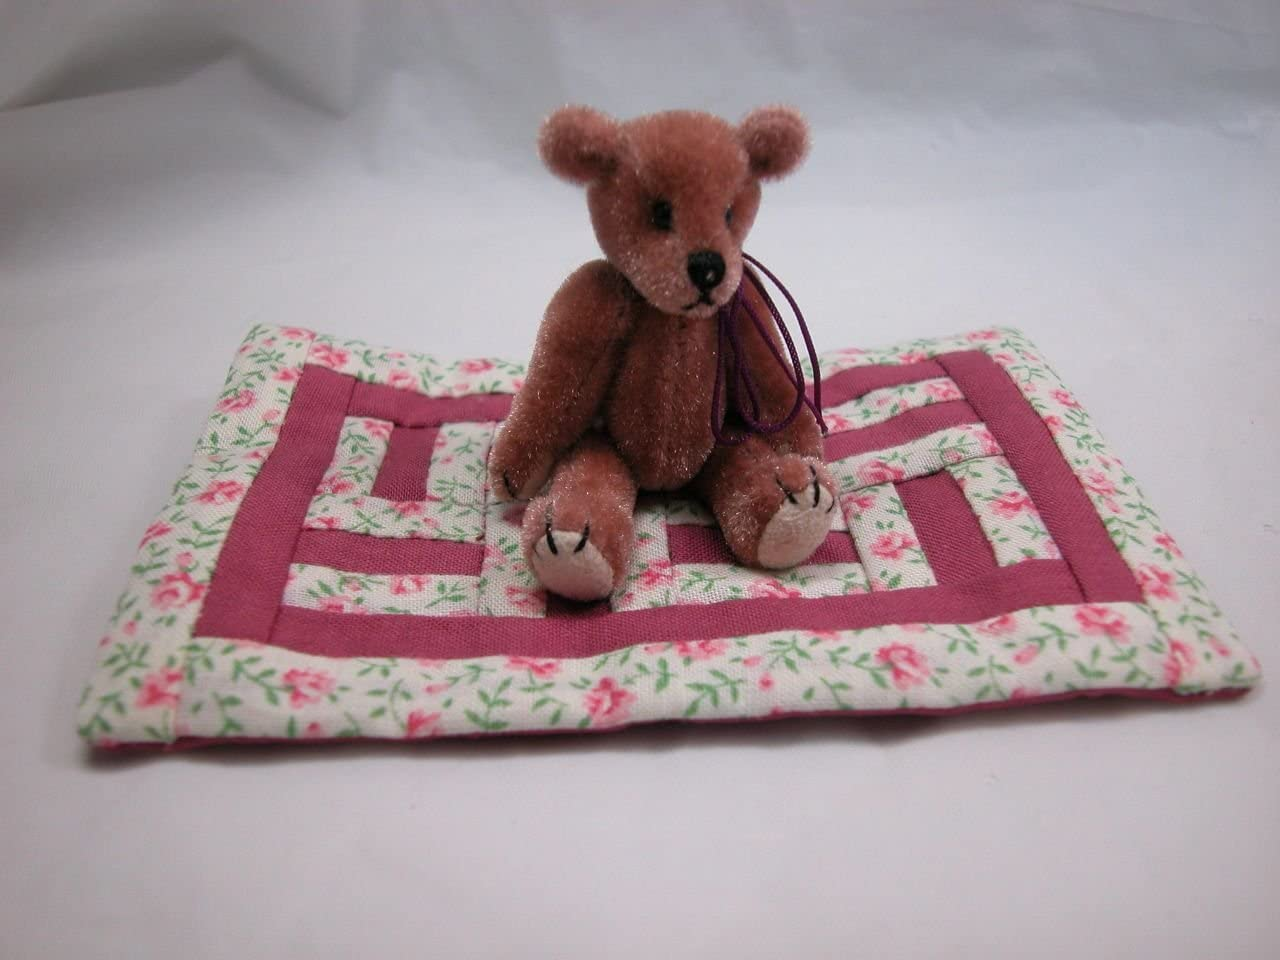 """World of Miniature Bears 2.5"""" Plush Bear with Quilt #5936Q5 Handmade Collectible Miniature"""